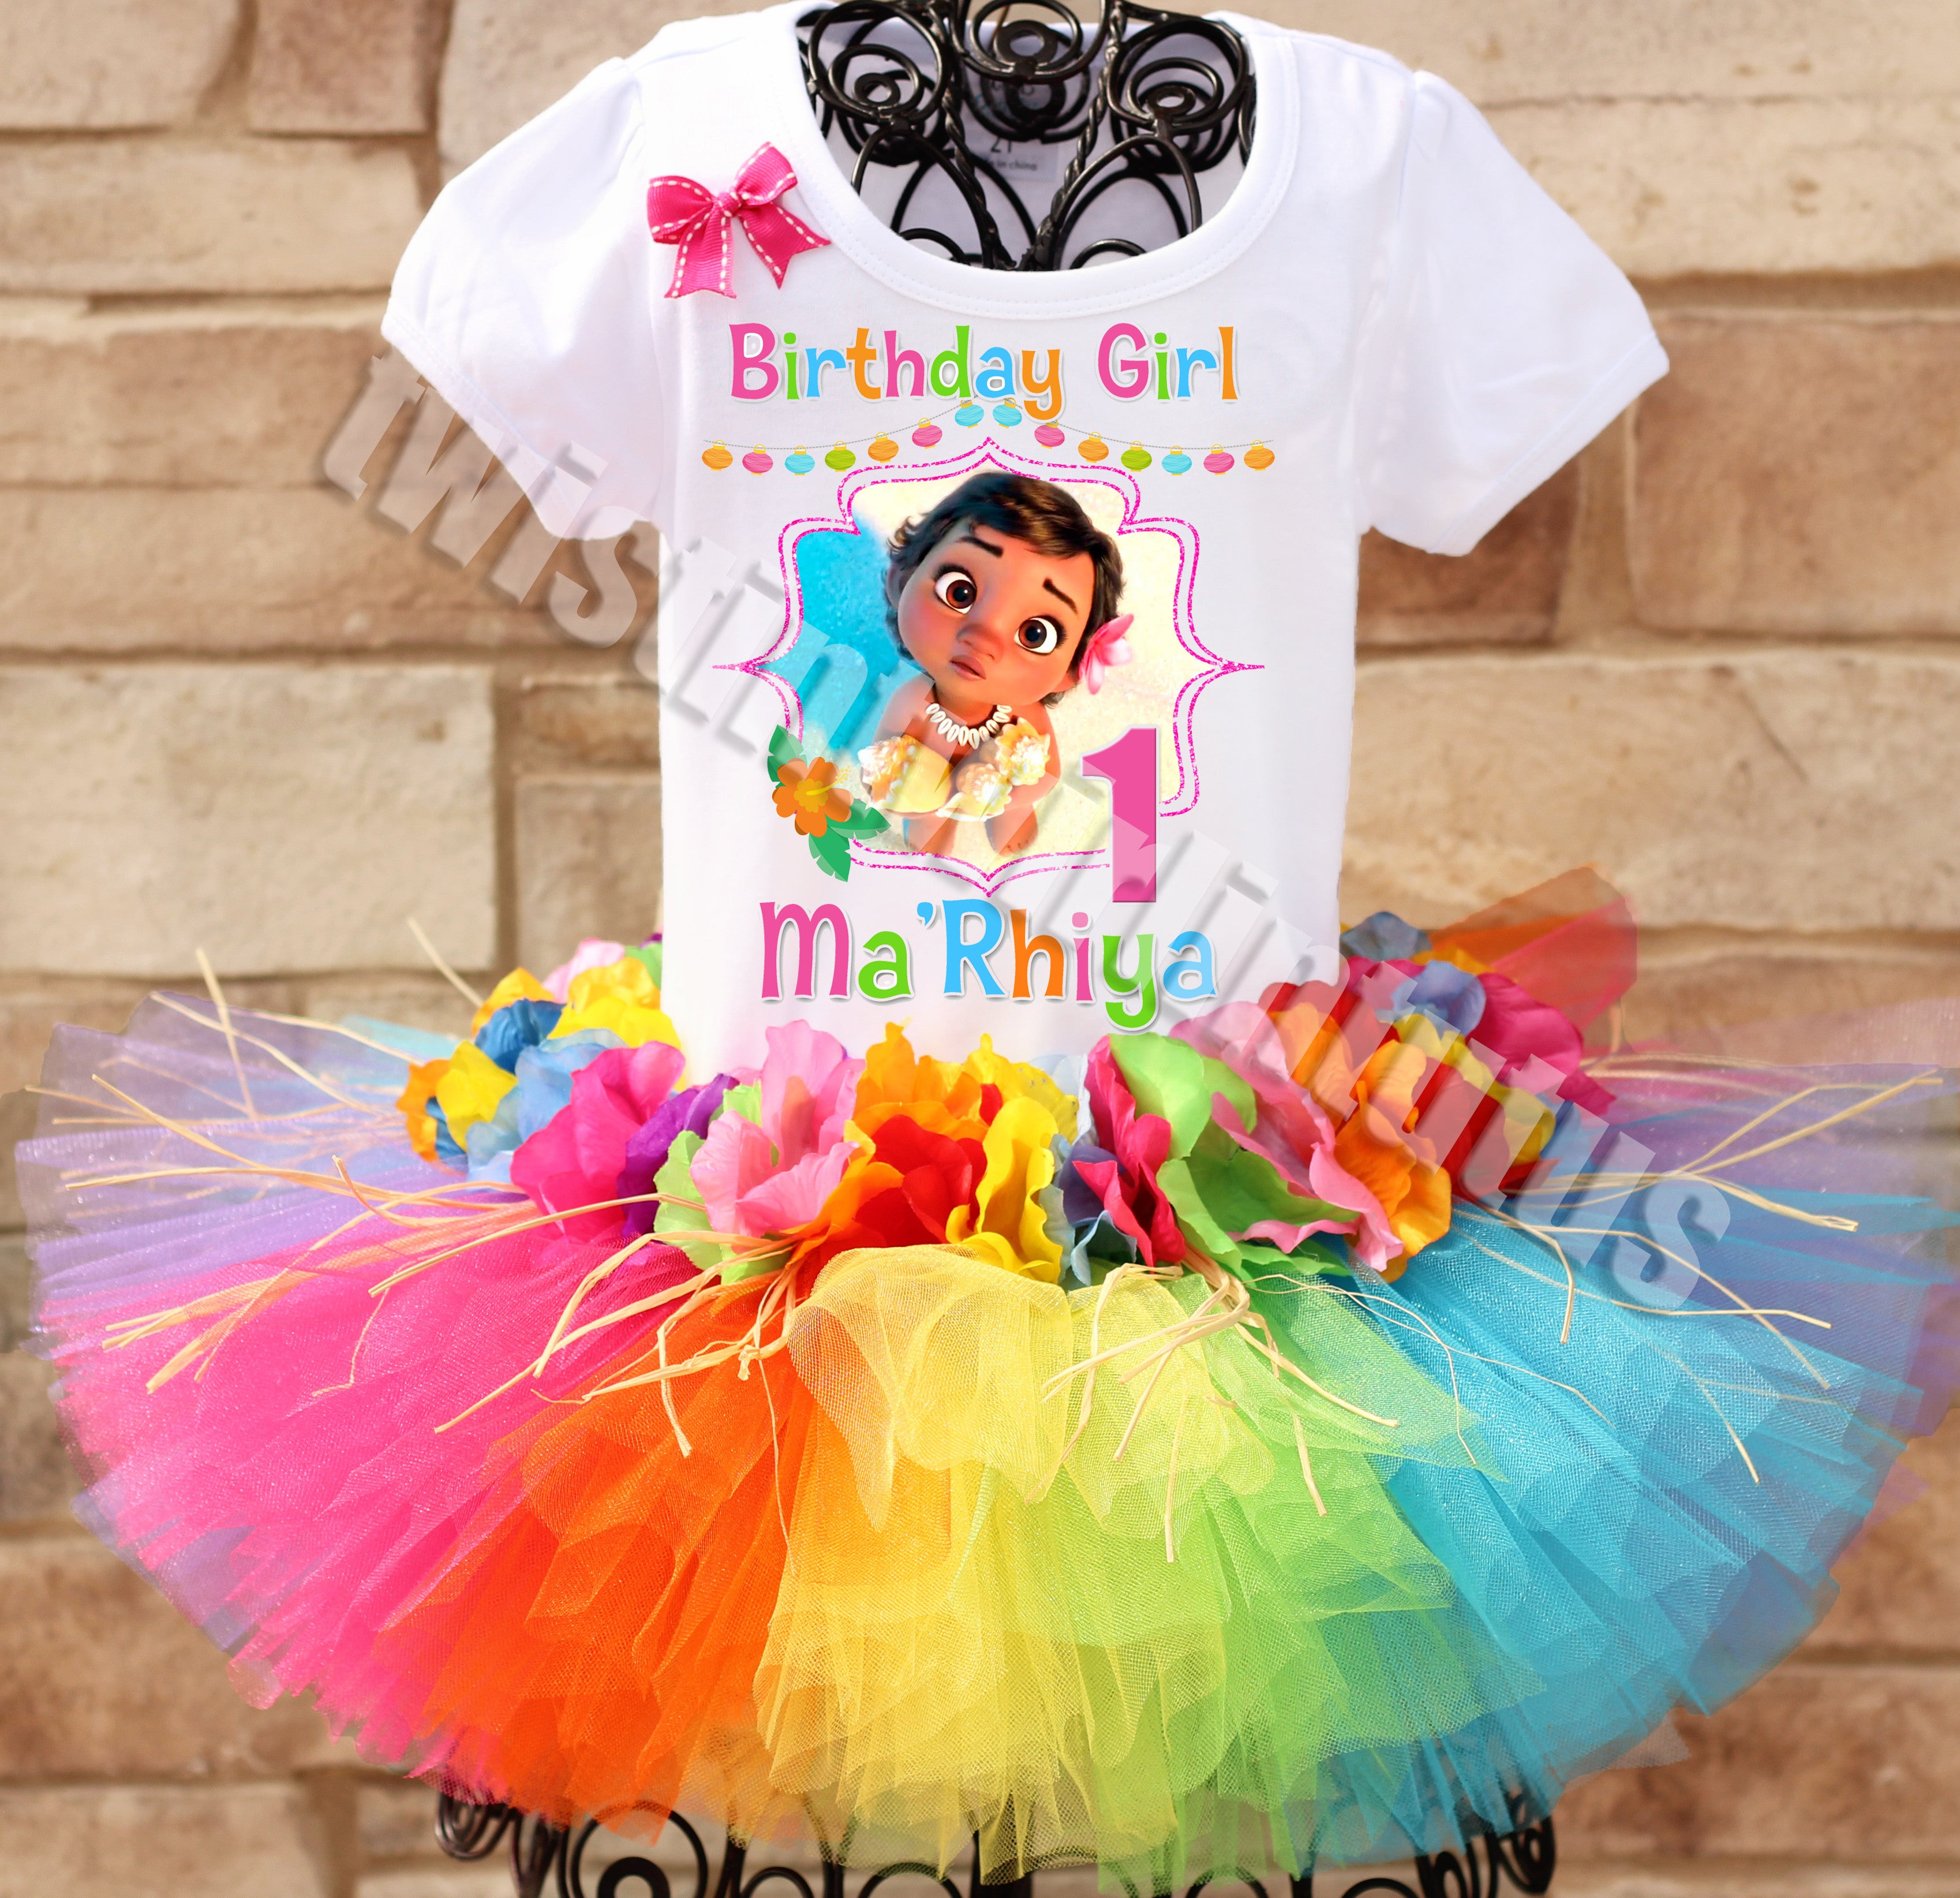 Moana Tutu 2nd Birthday Dress Name Personalized Outfit Custom Family Matching Shirt Age Name Baby Girl Toddler 1st,2nd,3rd,4th,5th,6th,7th.